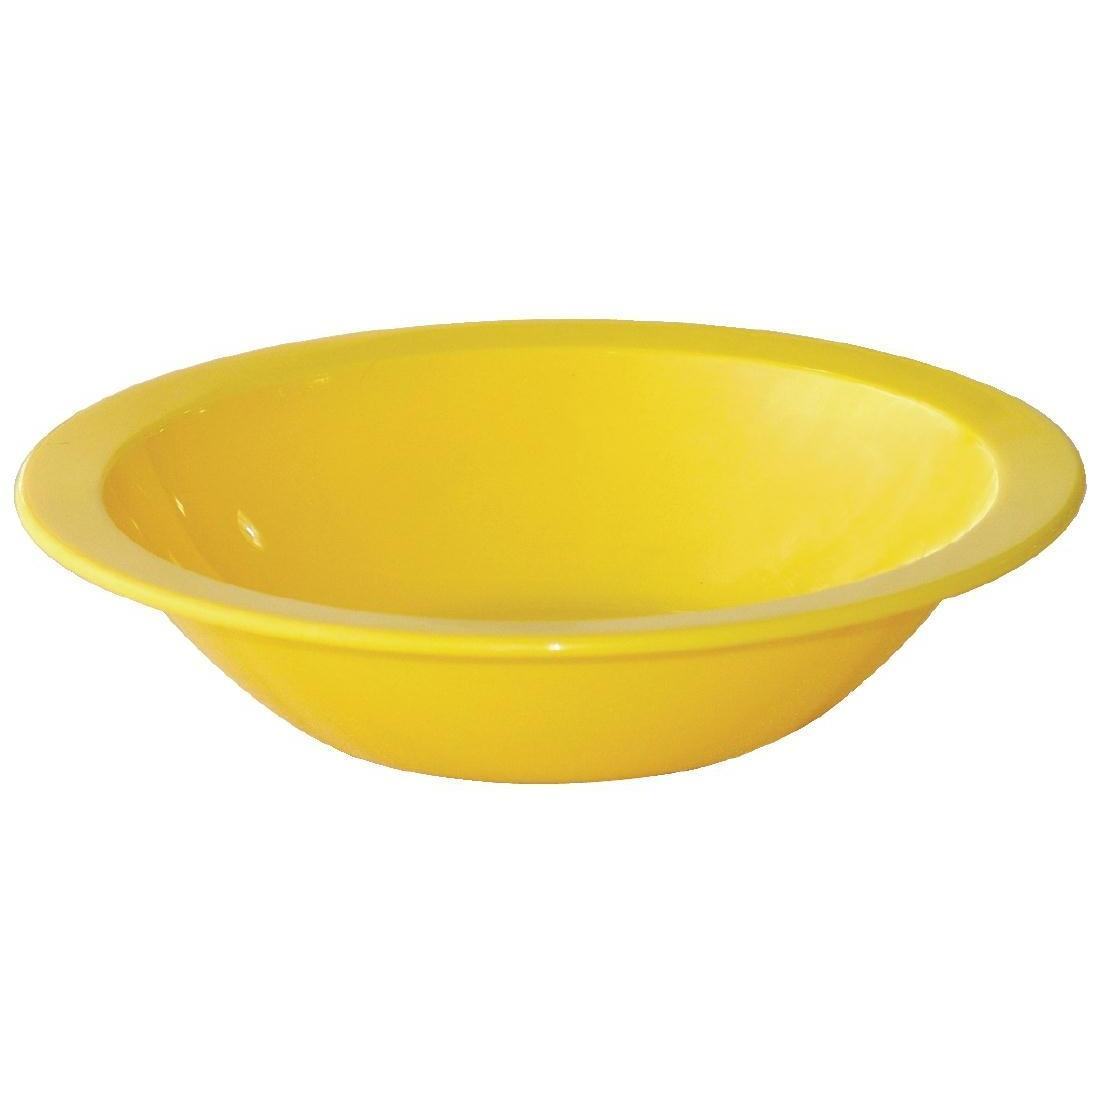 Kristallon Polycarbonate Bowls Yellow 172mm - Case 12 - CB771